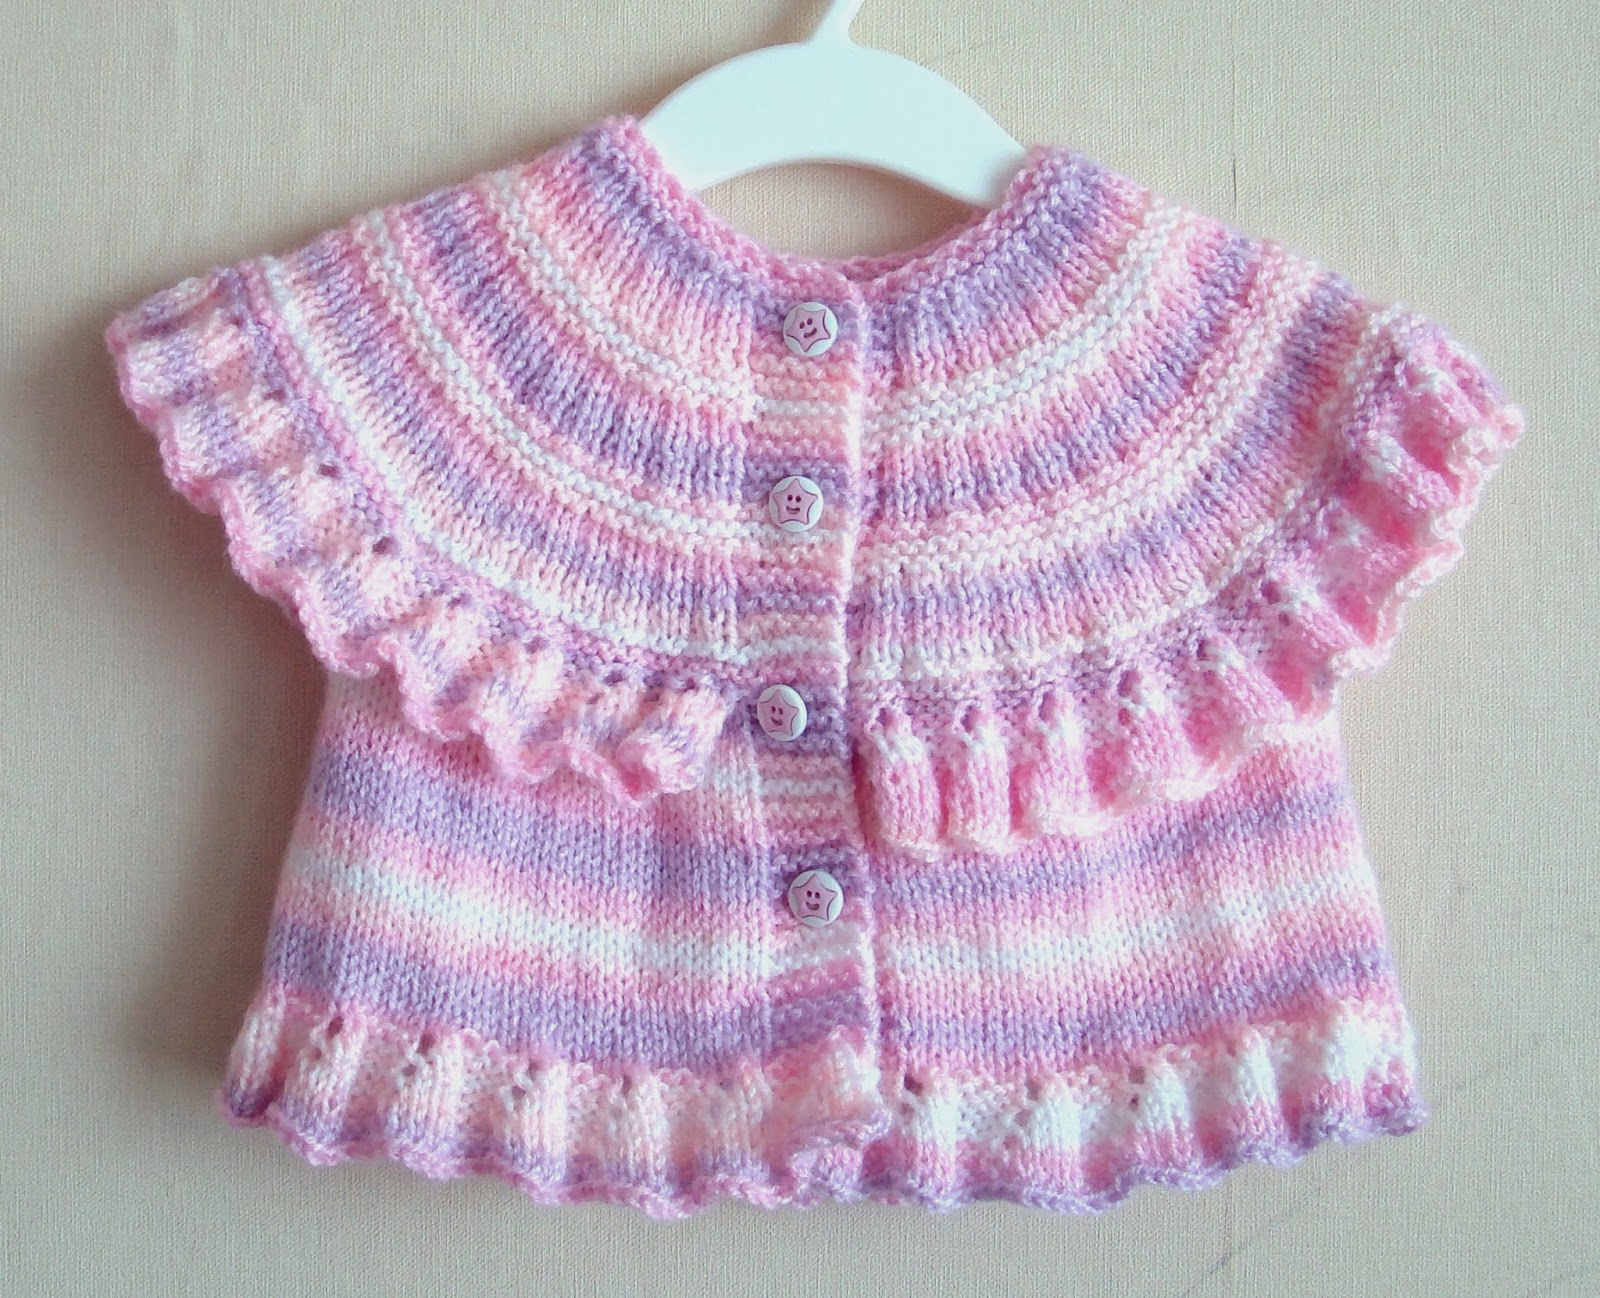 Knitting Pattern For Ruffle Baby Vest : Knitting Pattern for Ruffle Baby Vest ~ Pure Craft